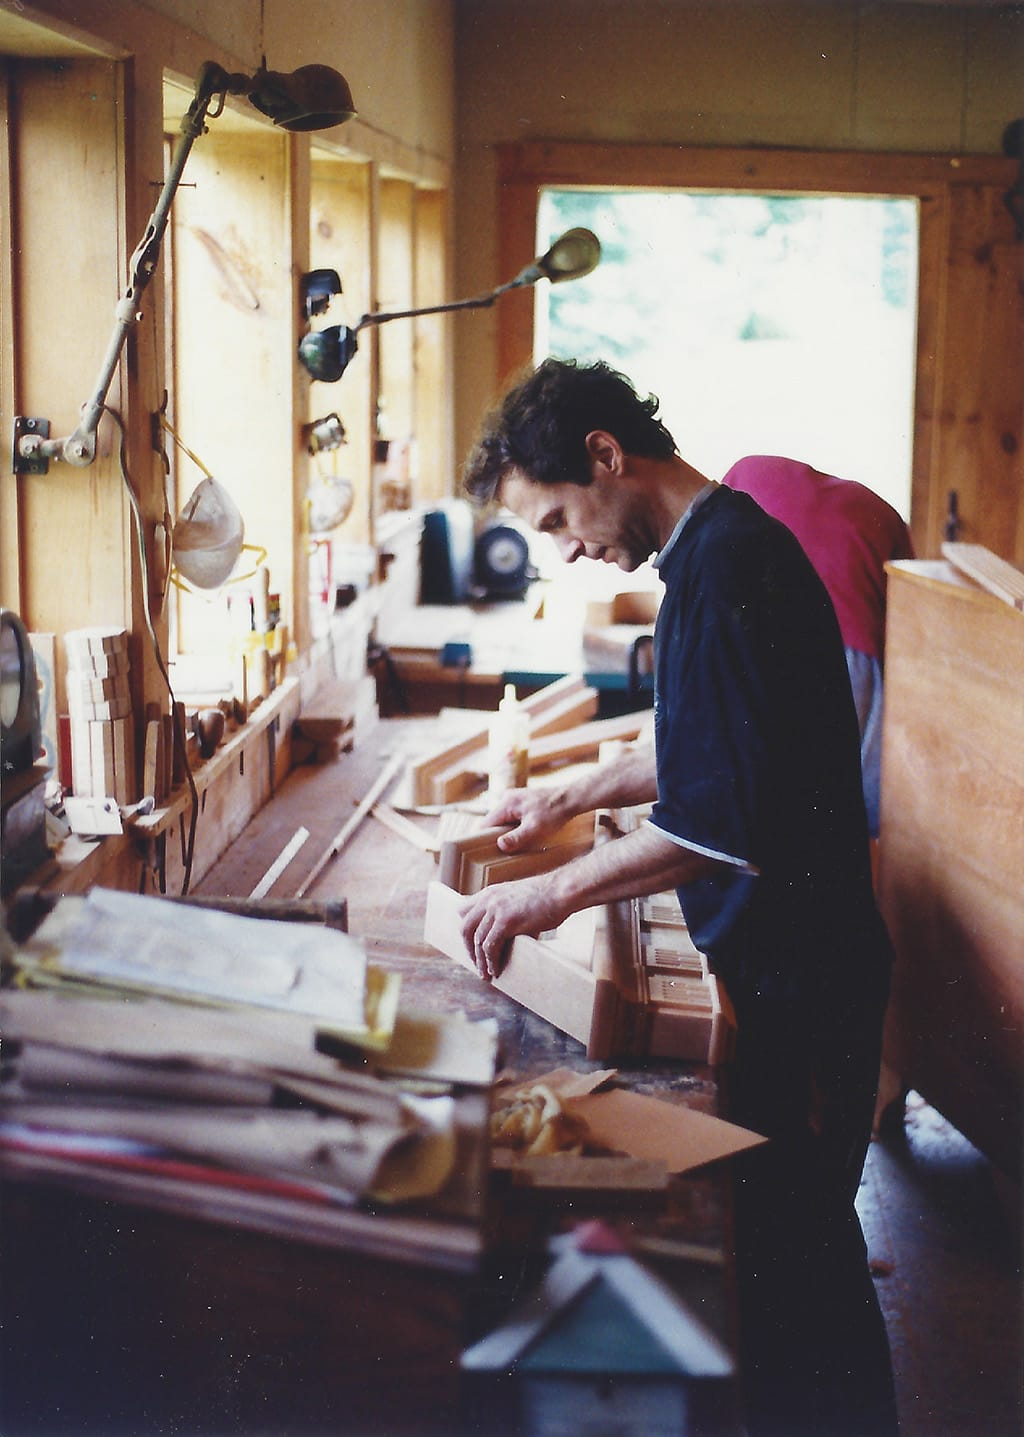 Peter Maynard in his shop circa 1990